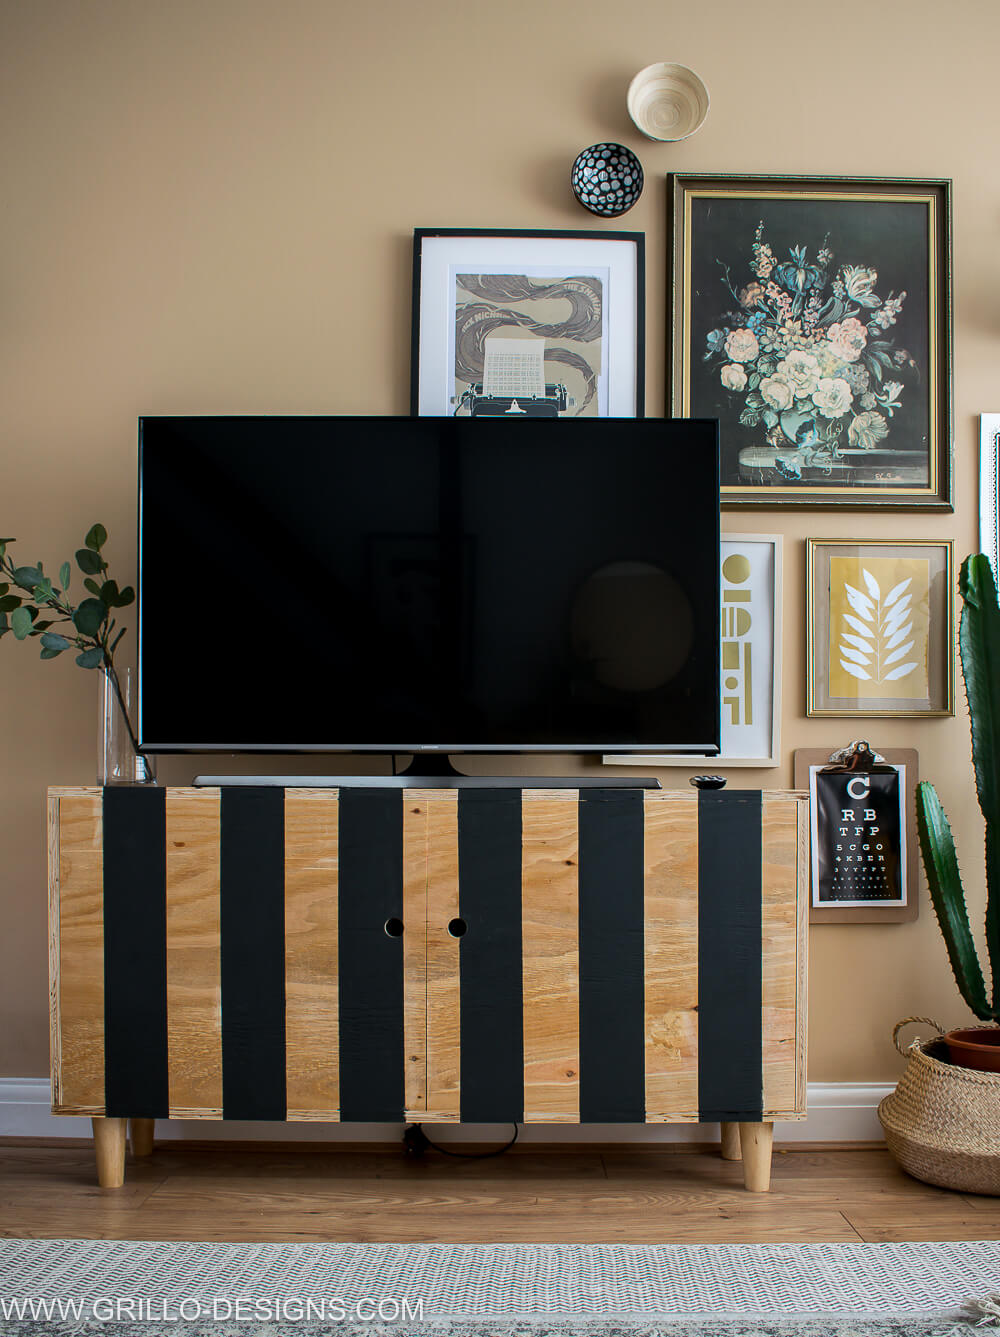 Learn how to build a modern plywood dit tv stand for your living room. Easy tutorial with plans! #diytvstand #tvstandideas #tvstandideasforlivingroom #grillodesigns